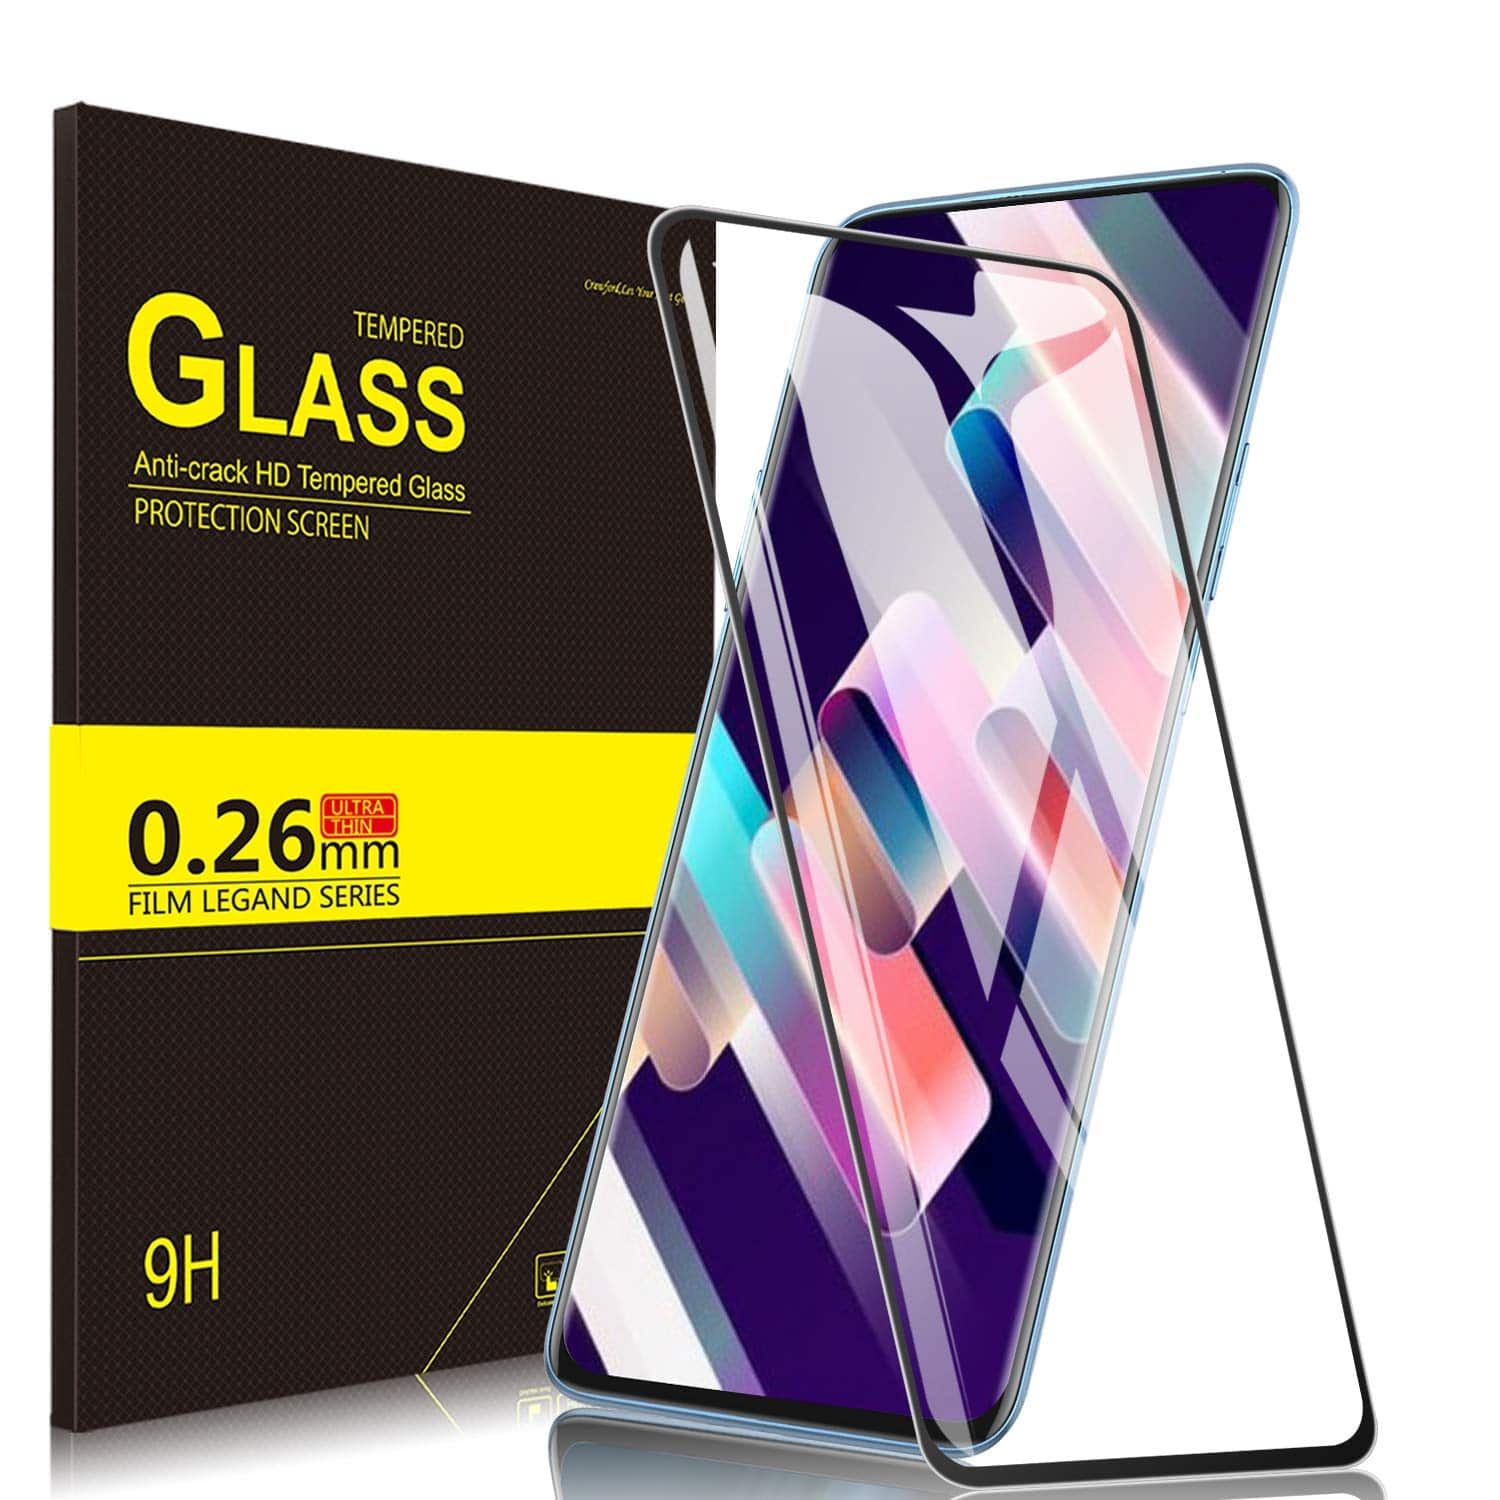 Yocktec Best OnePlus 7 Pro Screen Protectors